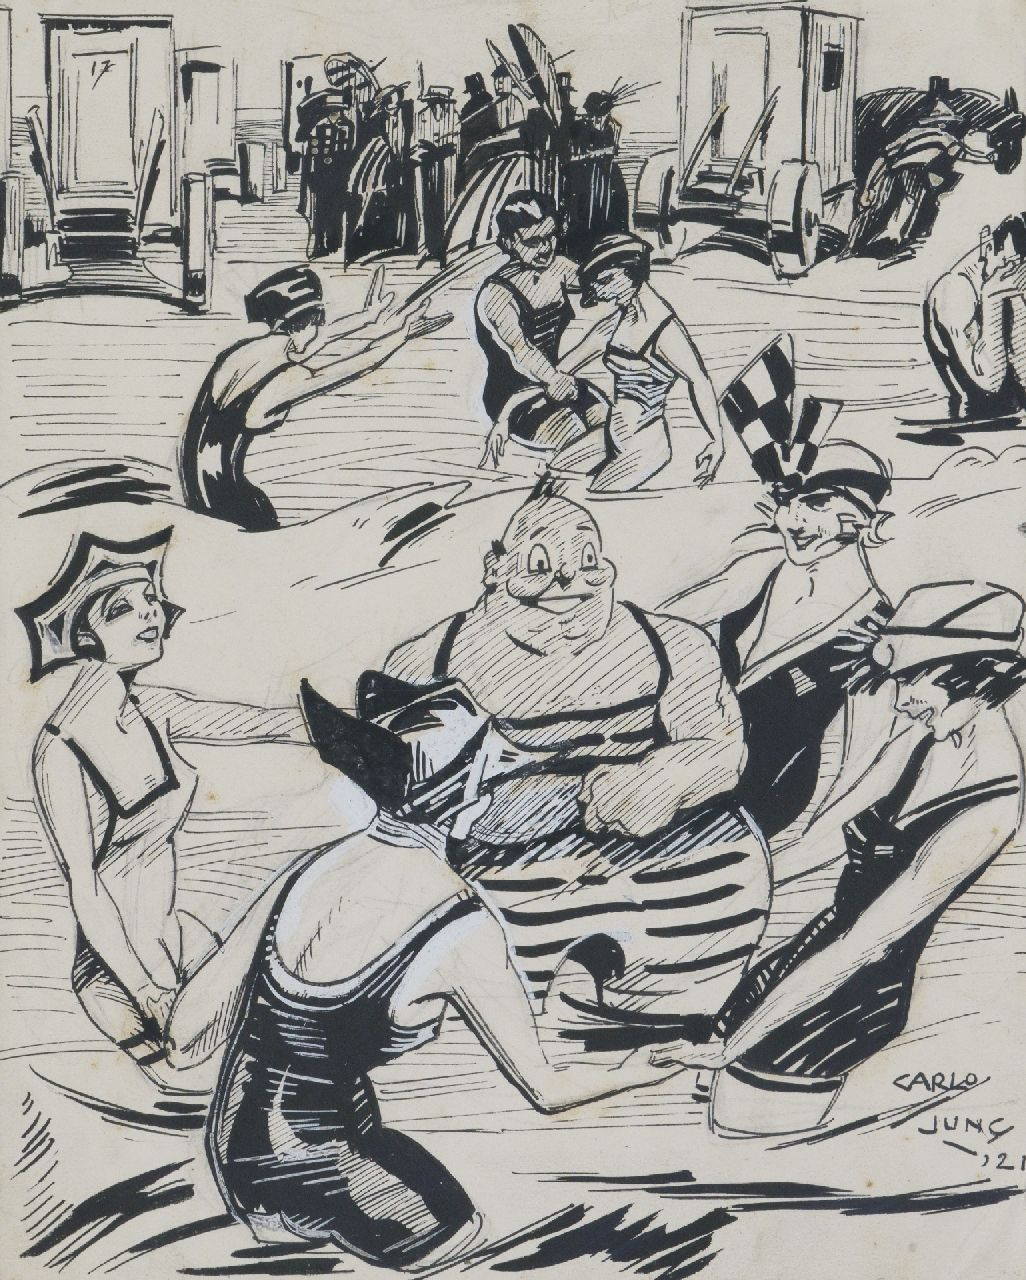 Jung C.H.  | Carel Hendrik 'Carlo' Jung | Watercolours and drawings offered for sale | Beach party, Indian ink on paper 22.0 x 24.0 cm, signed l.r. and dated '21